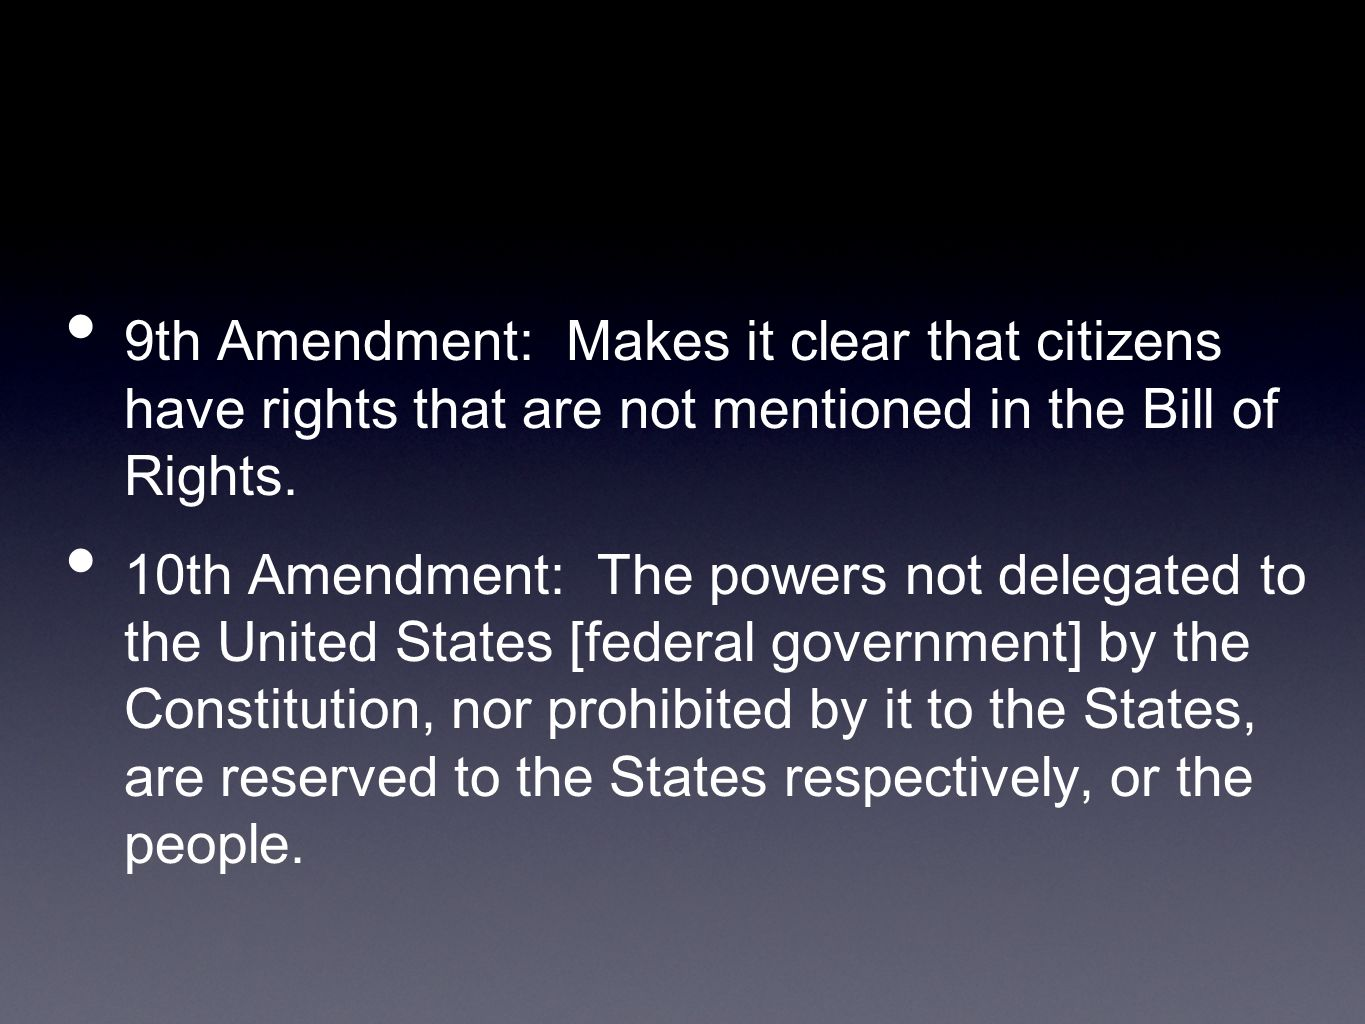 9th Amendment: Makes it clear that citizens have rights that are not mentioned in the Bill of Rights.